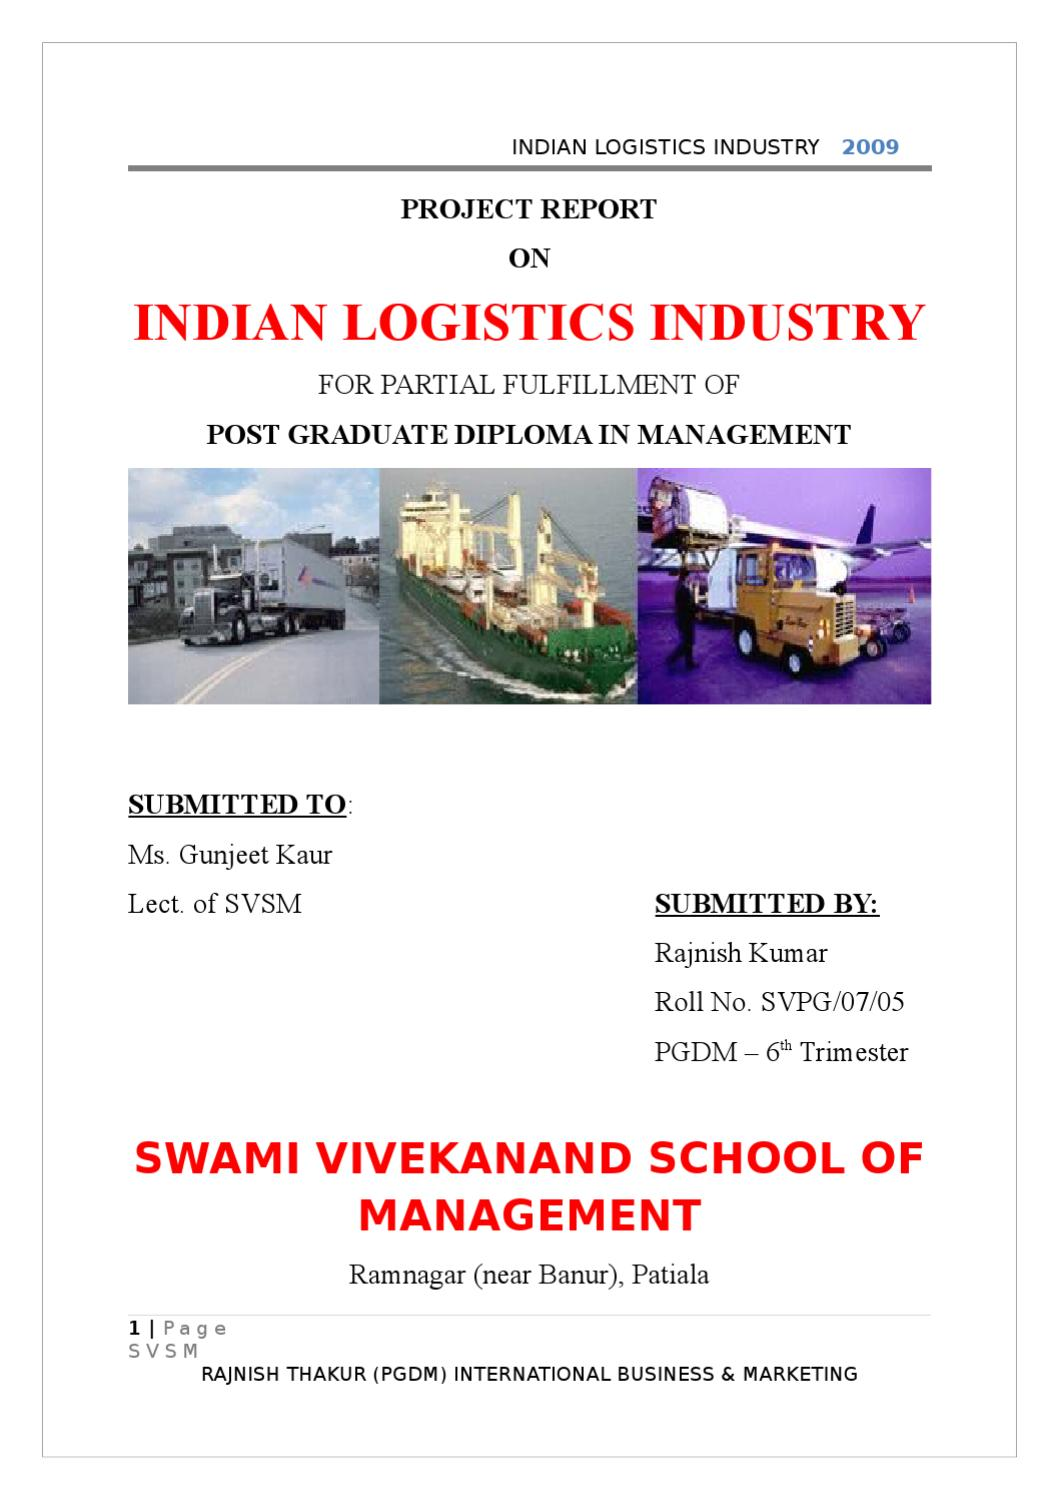 PROJECT REPORT ON INDIAN LOGISTICS INDUSTRY by Sanjay Gupta